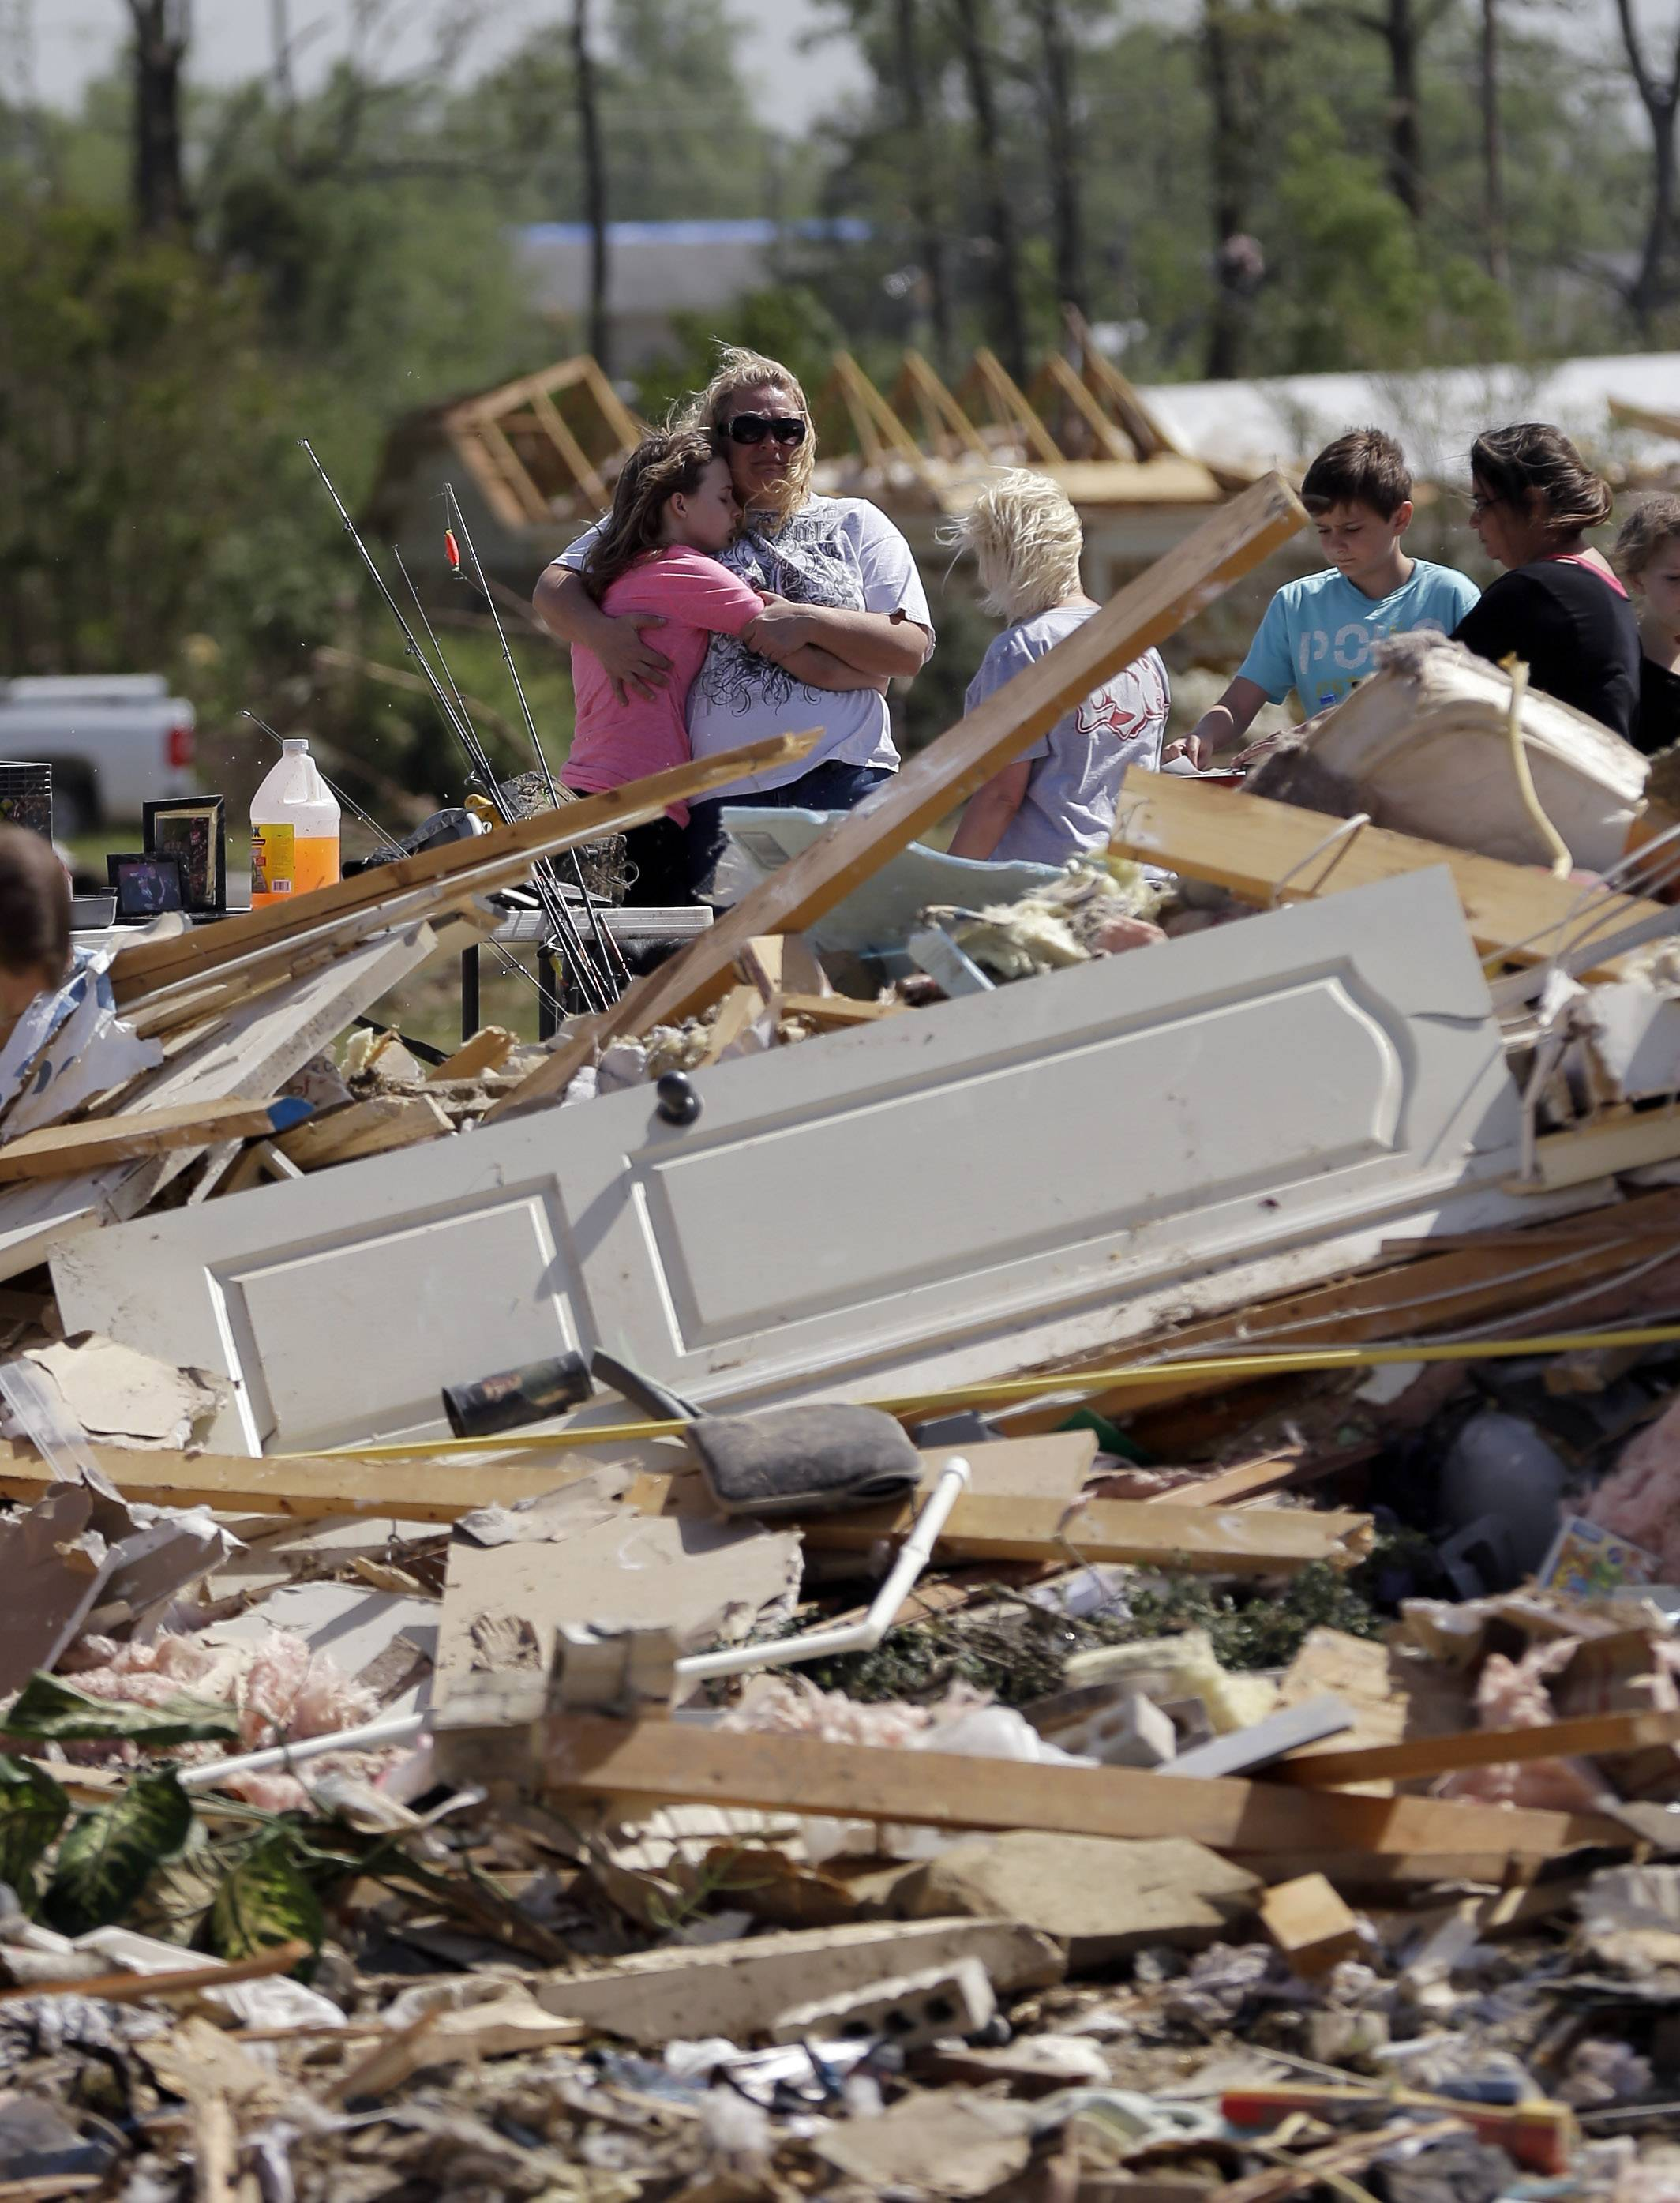 Residents and friends sift through debris Monday, a day after a tornado struck Vilonia, Ark.